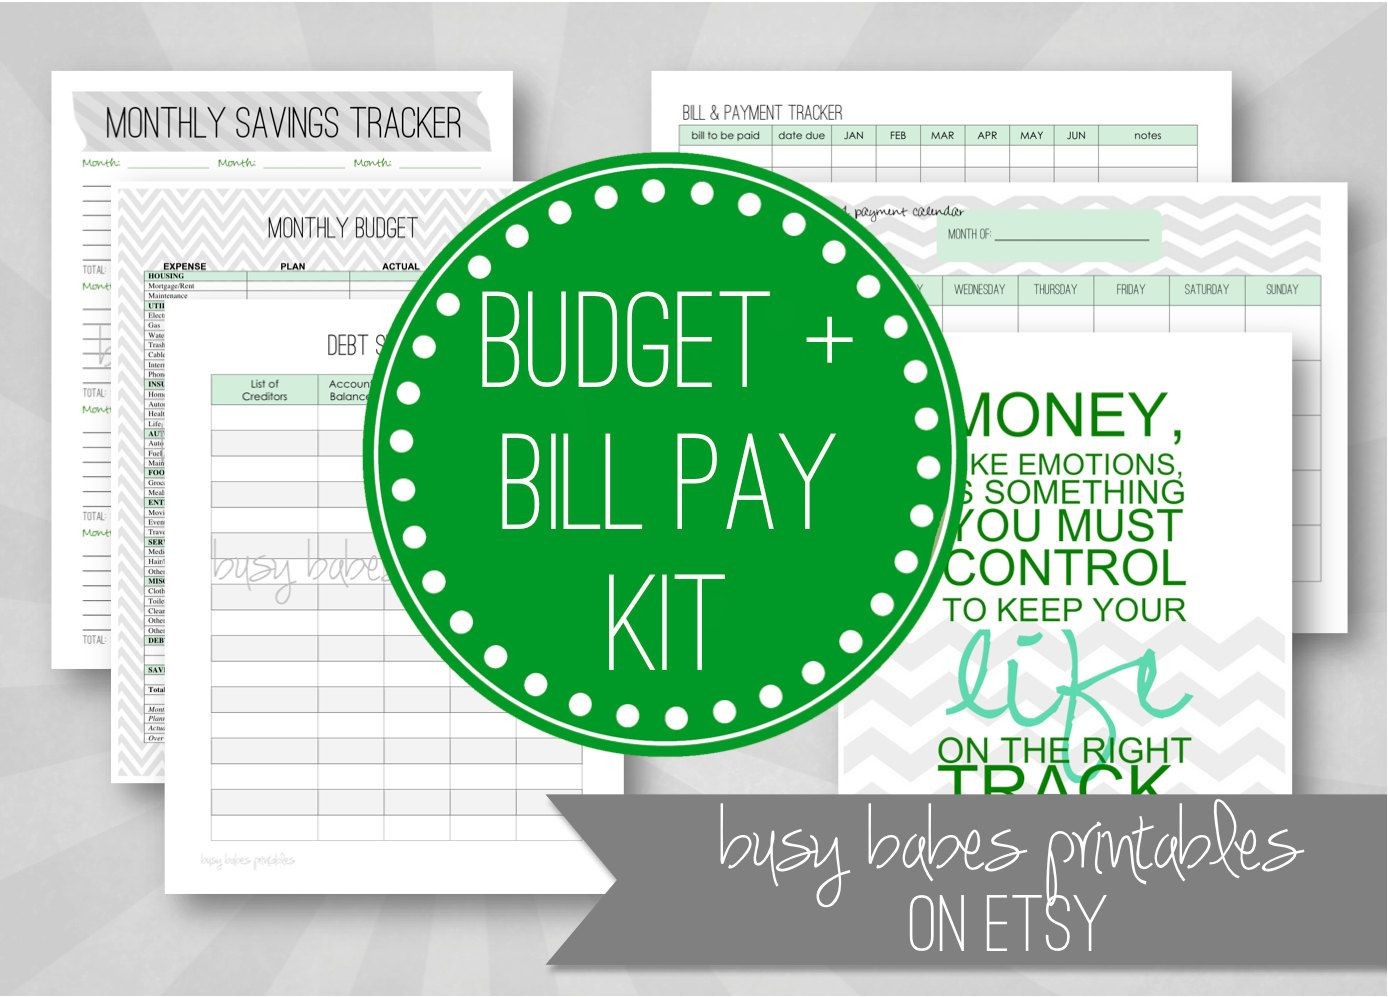 Editable Budget And Bill Pay Kit